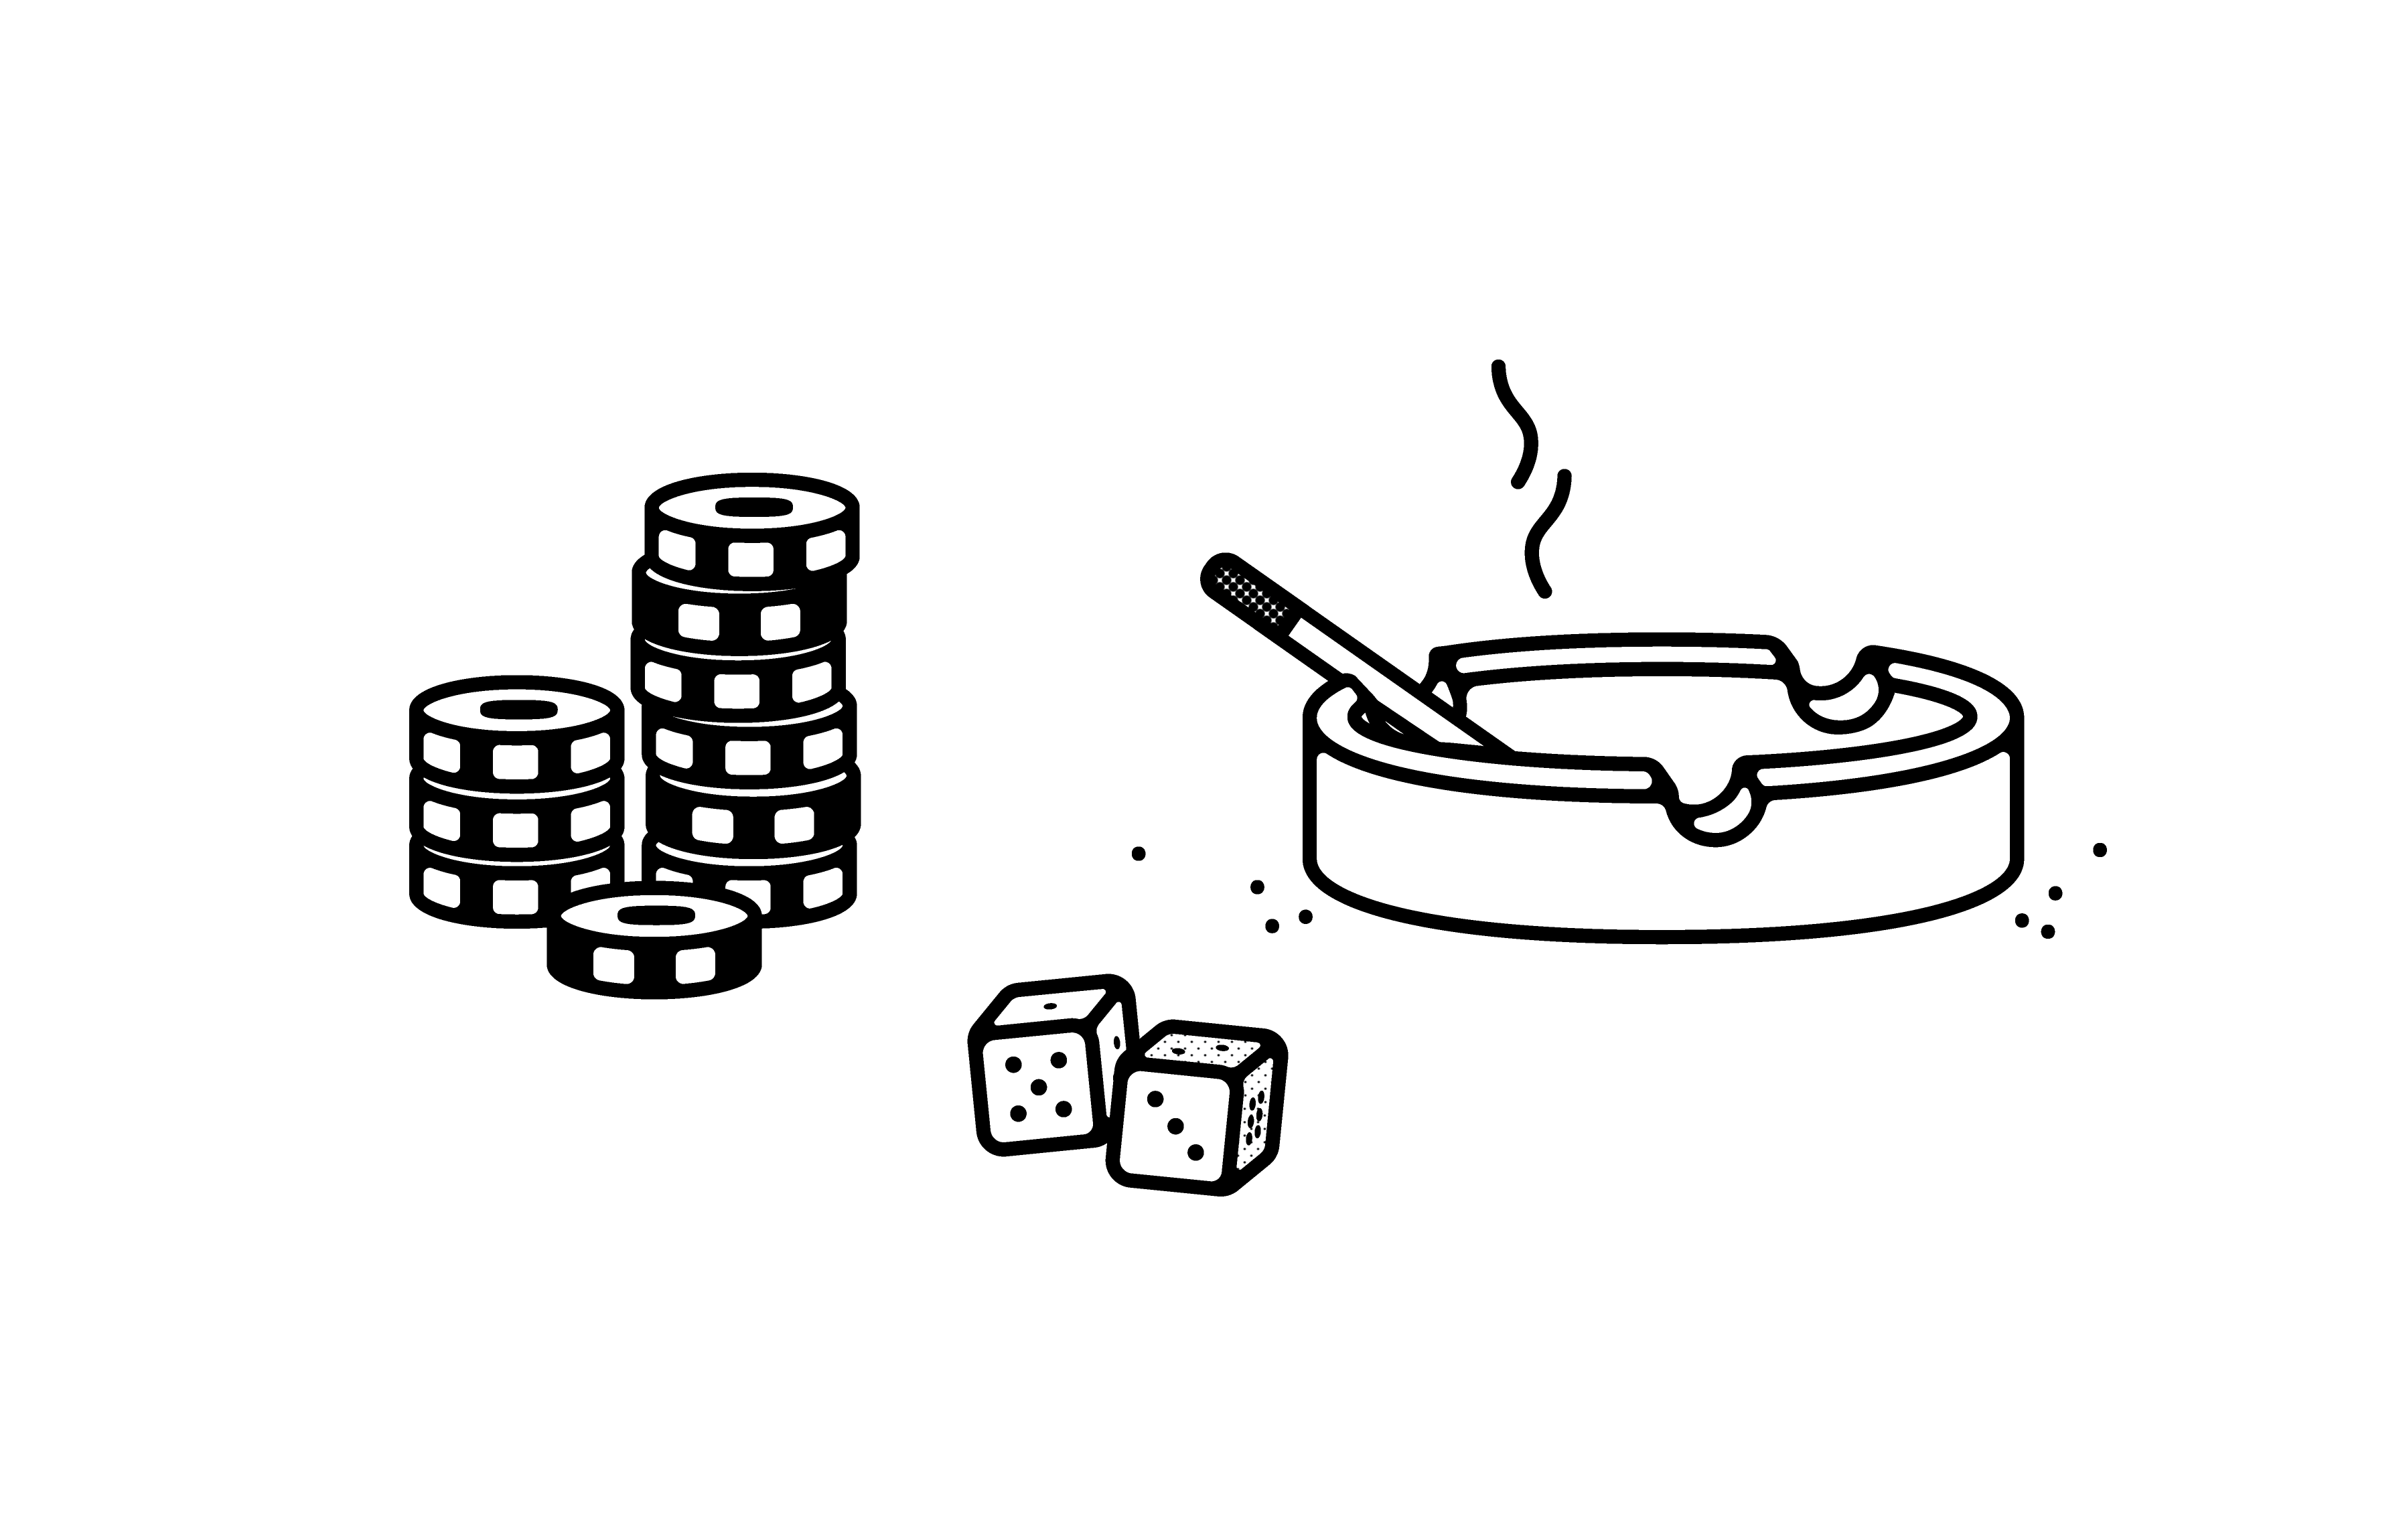 A neatly drawn illustration with a white background. Poker chips, a pair of dice and a lit cigarette in an ash tray.